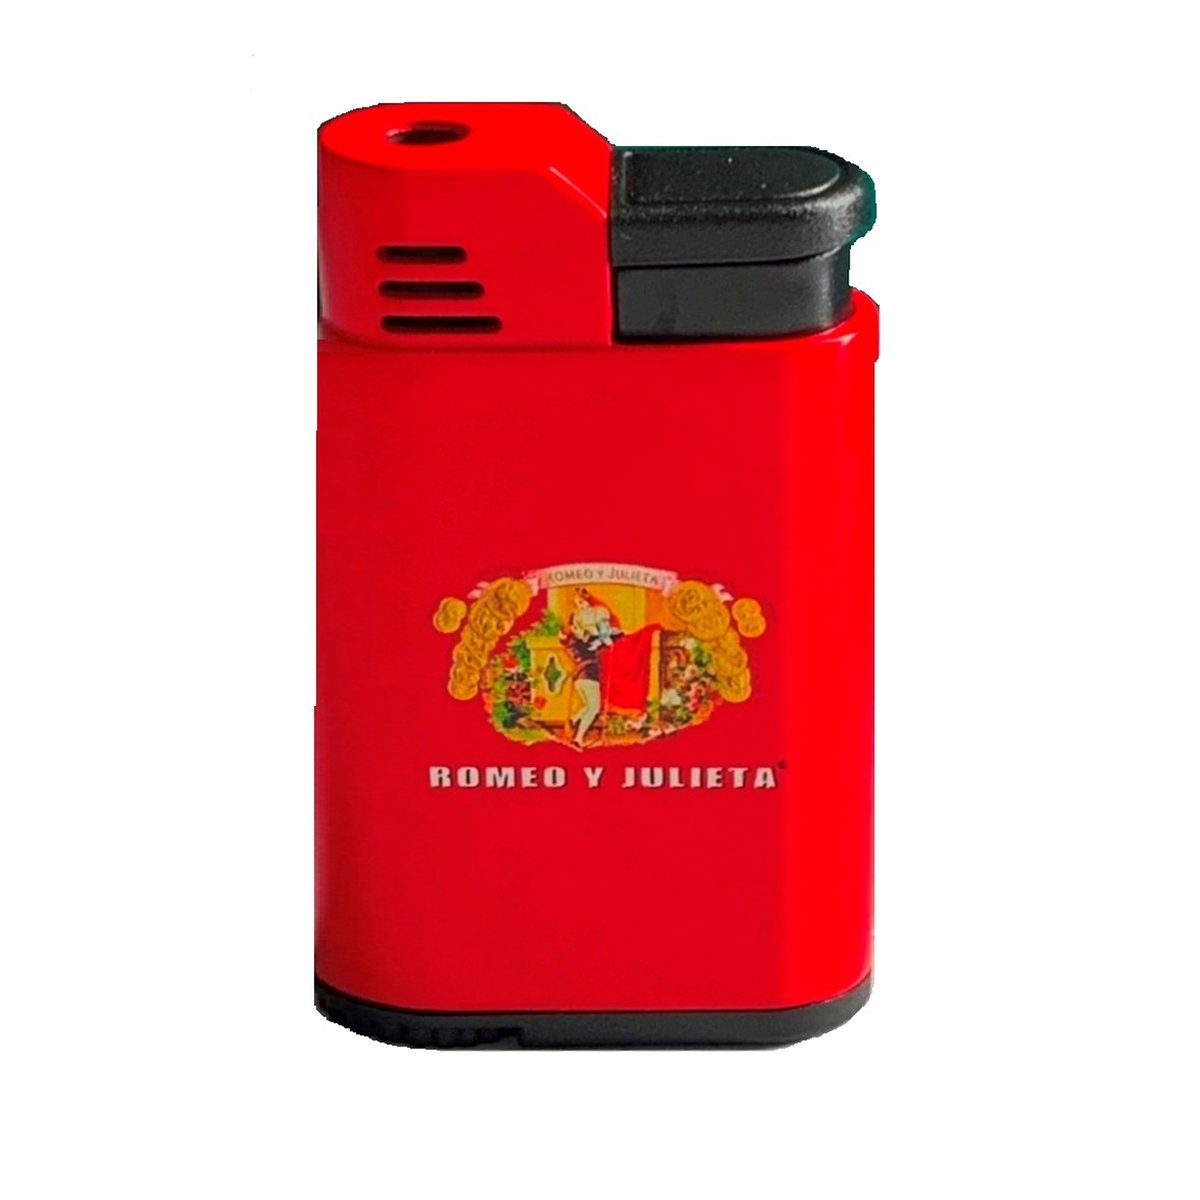 ROMEO Y JULIETA Cigar Lighter